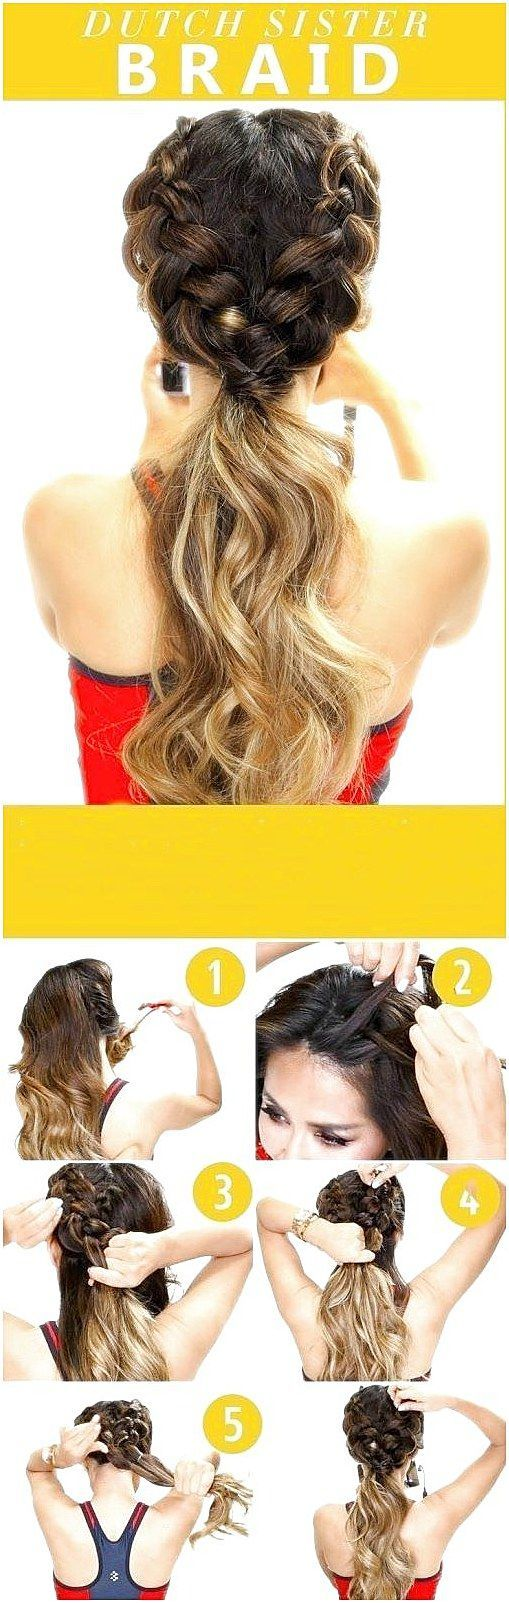 cool 10 Super-easy Trendy hairstyles for school. Quick, Easy, Cute and Simple Step By Step Girls and Teens Hairstyles for Back to School. Great For Me cool 10 Super-easy Trendy hairstyles for school. Quick, Easy, Cute and Simple Step By Step Girls and Teens Hairstyles for Back to School. Great For Me...